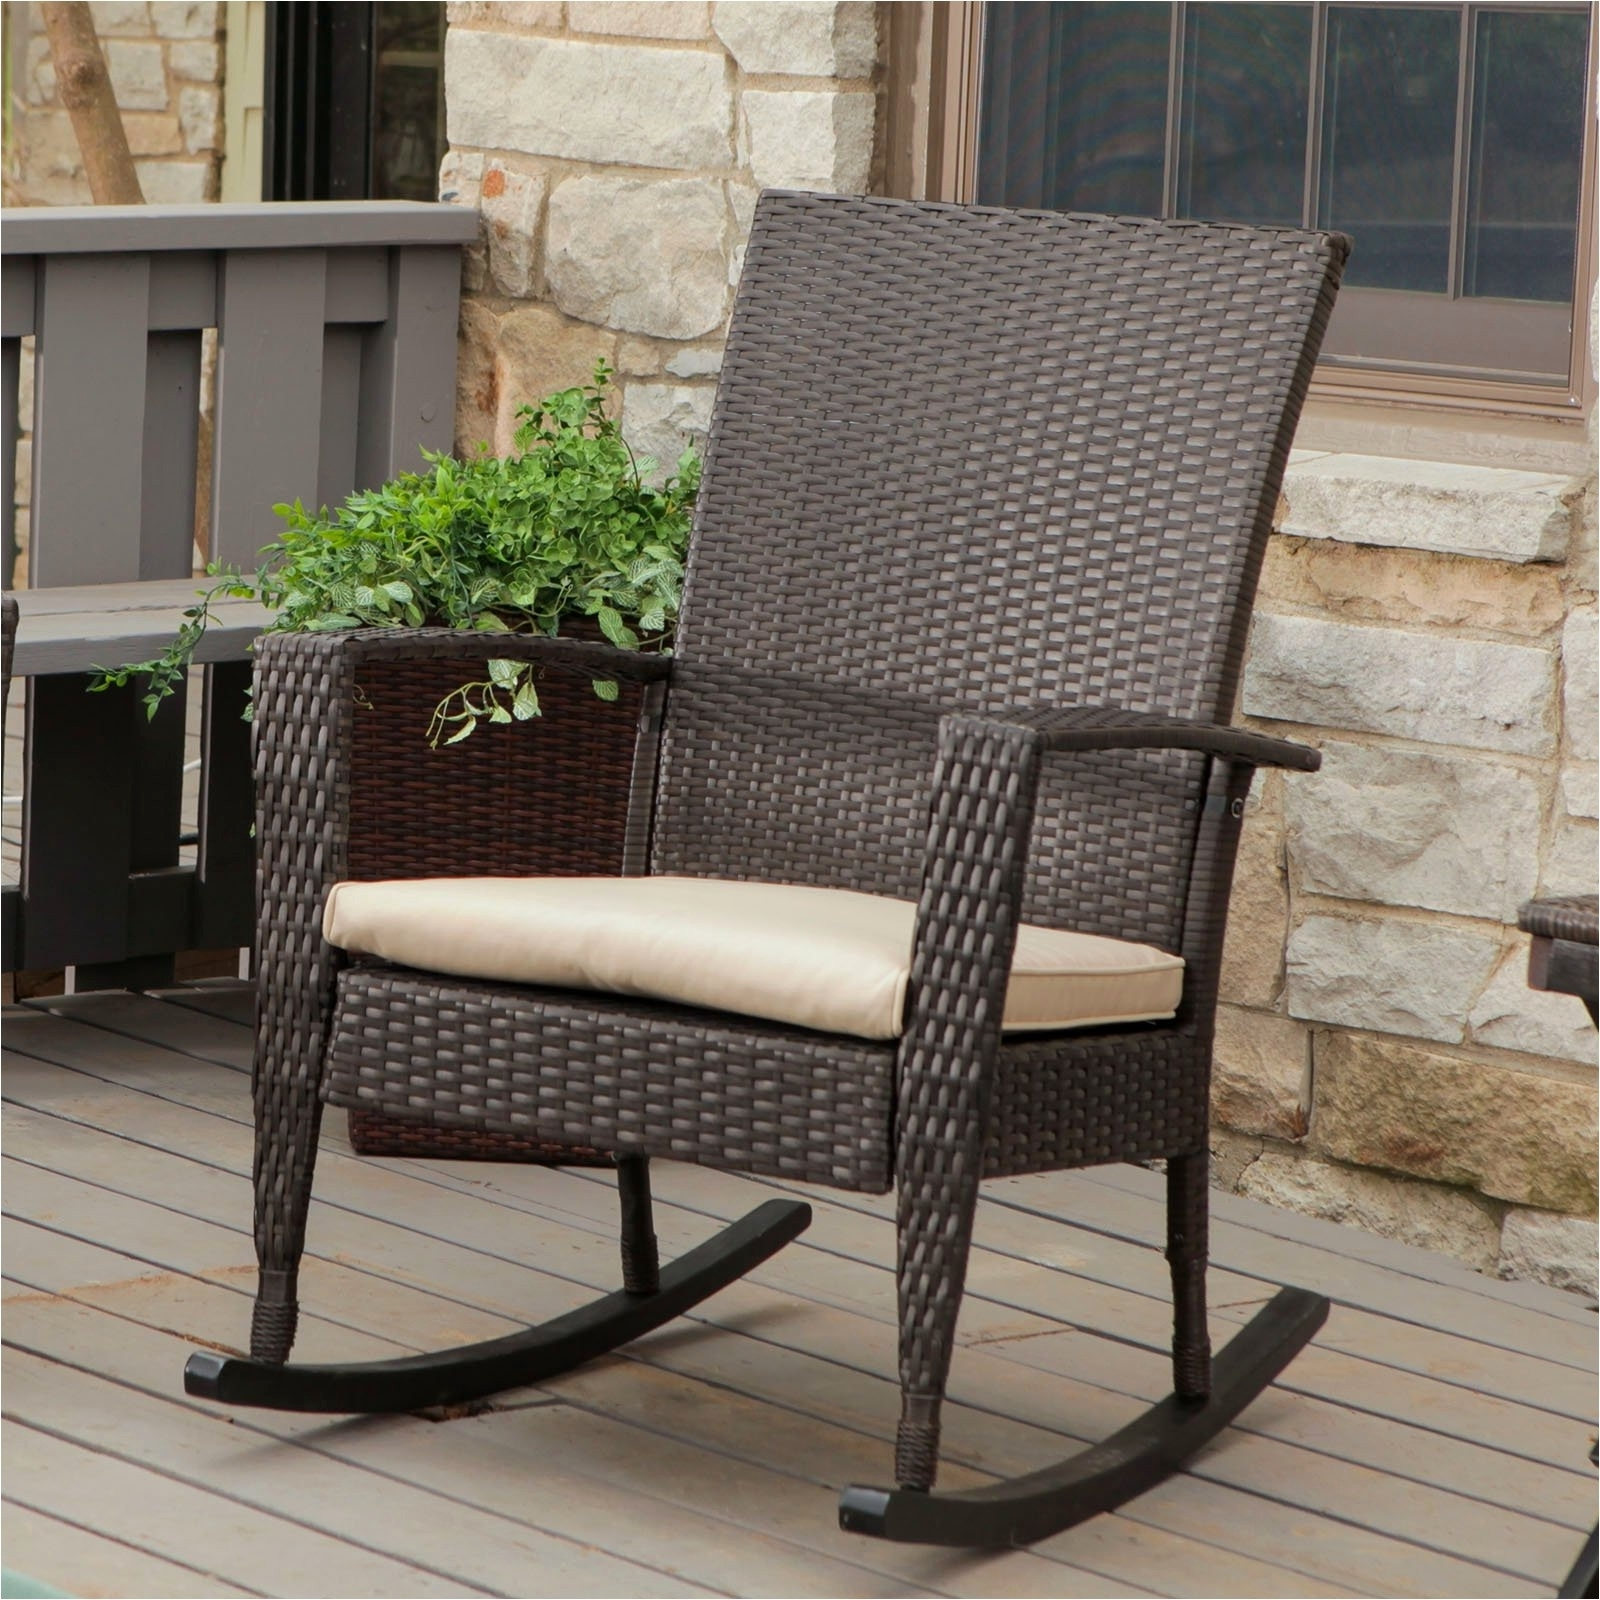 Rocking Chairs At Kroger Regarding Widely Used Patio : Kroger Patio Furniture Kroger Outdoor Furniture (View 10 of 15)